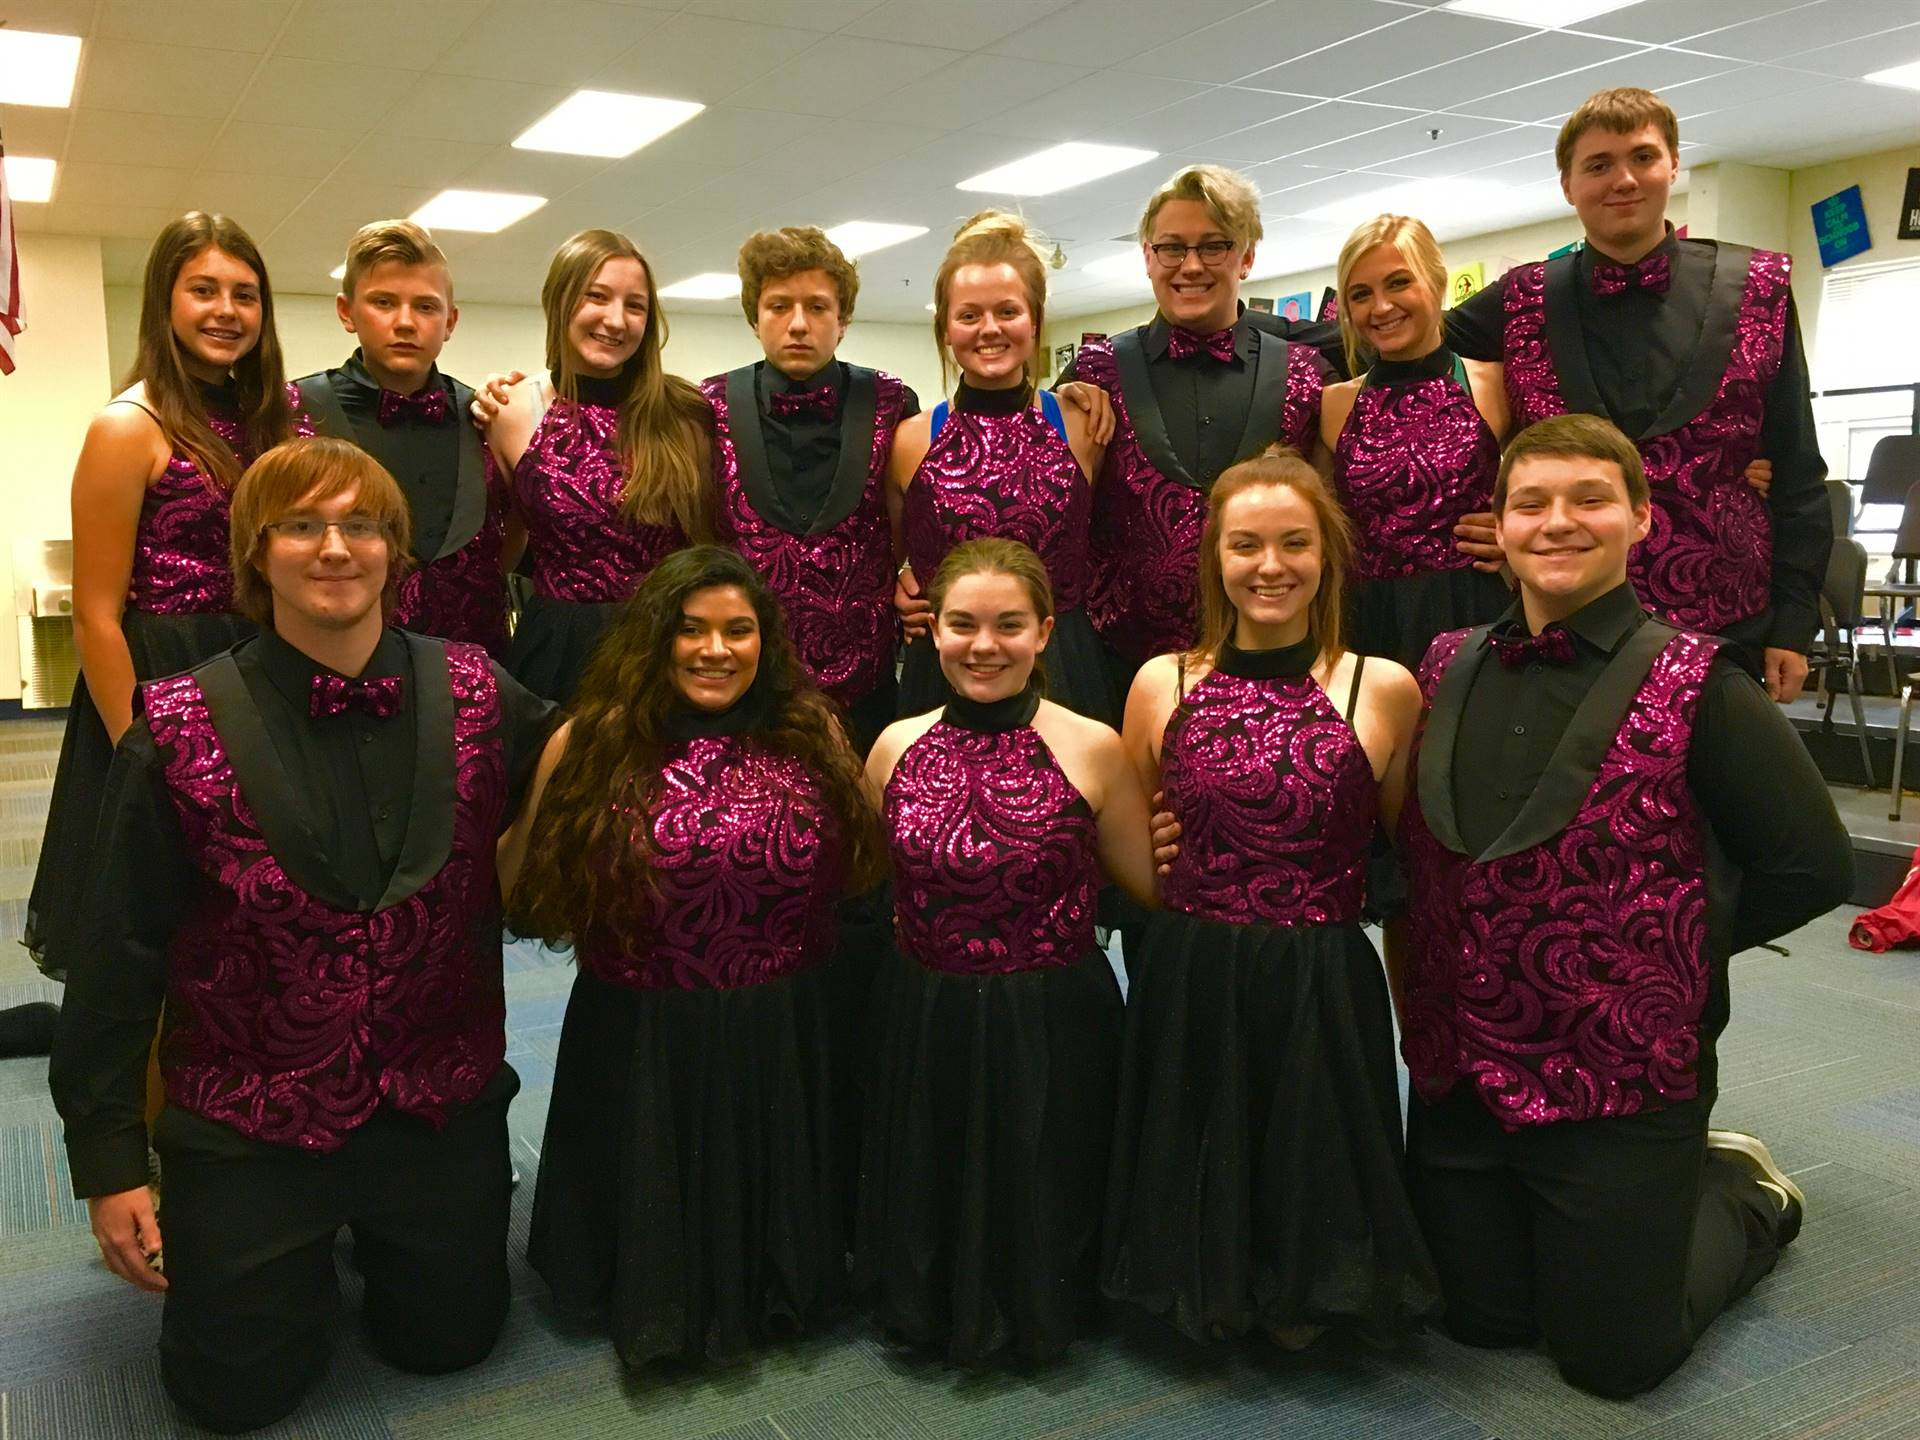 Jet Set students pose for a picture before their concert